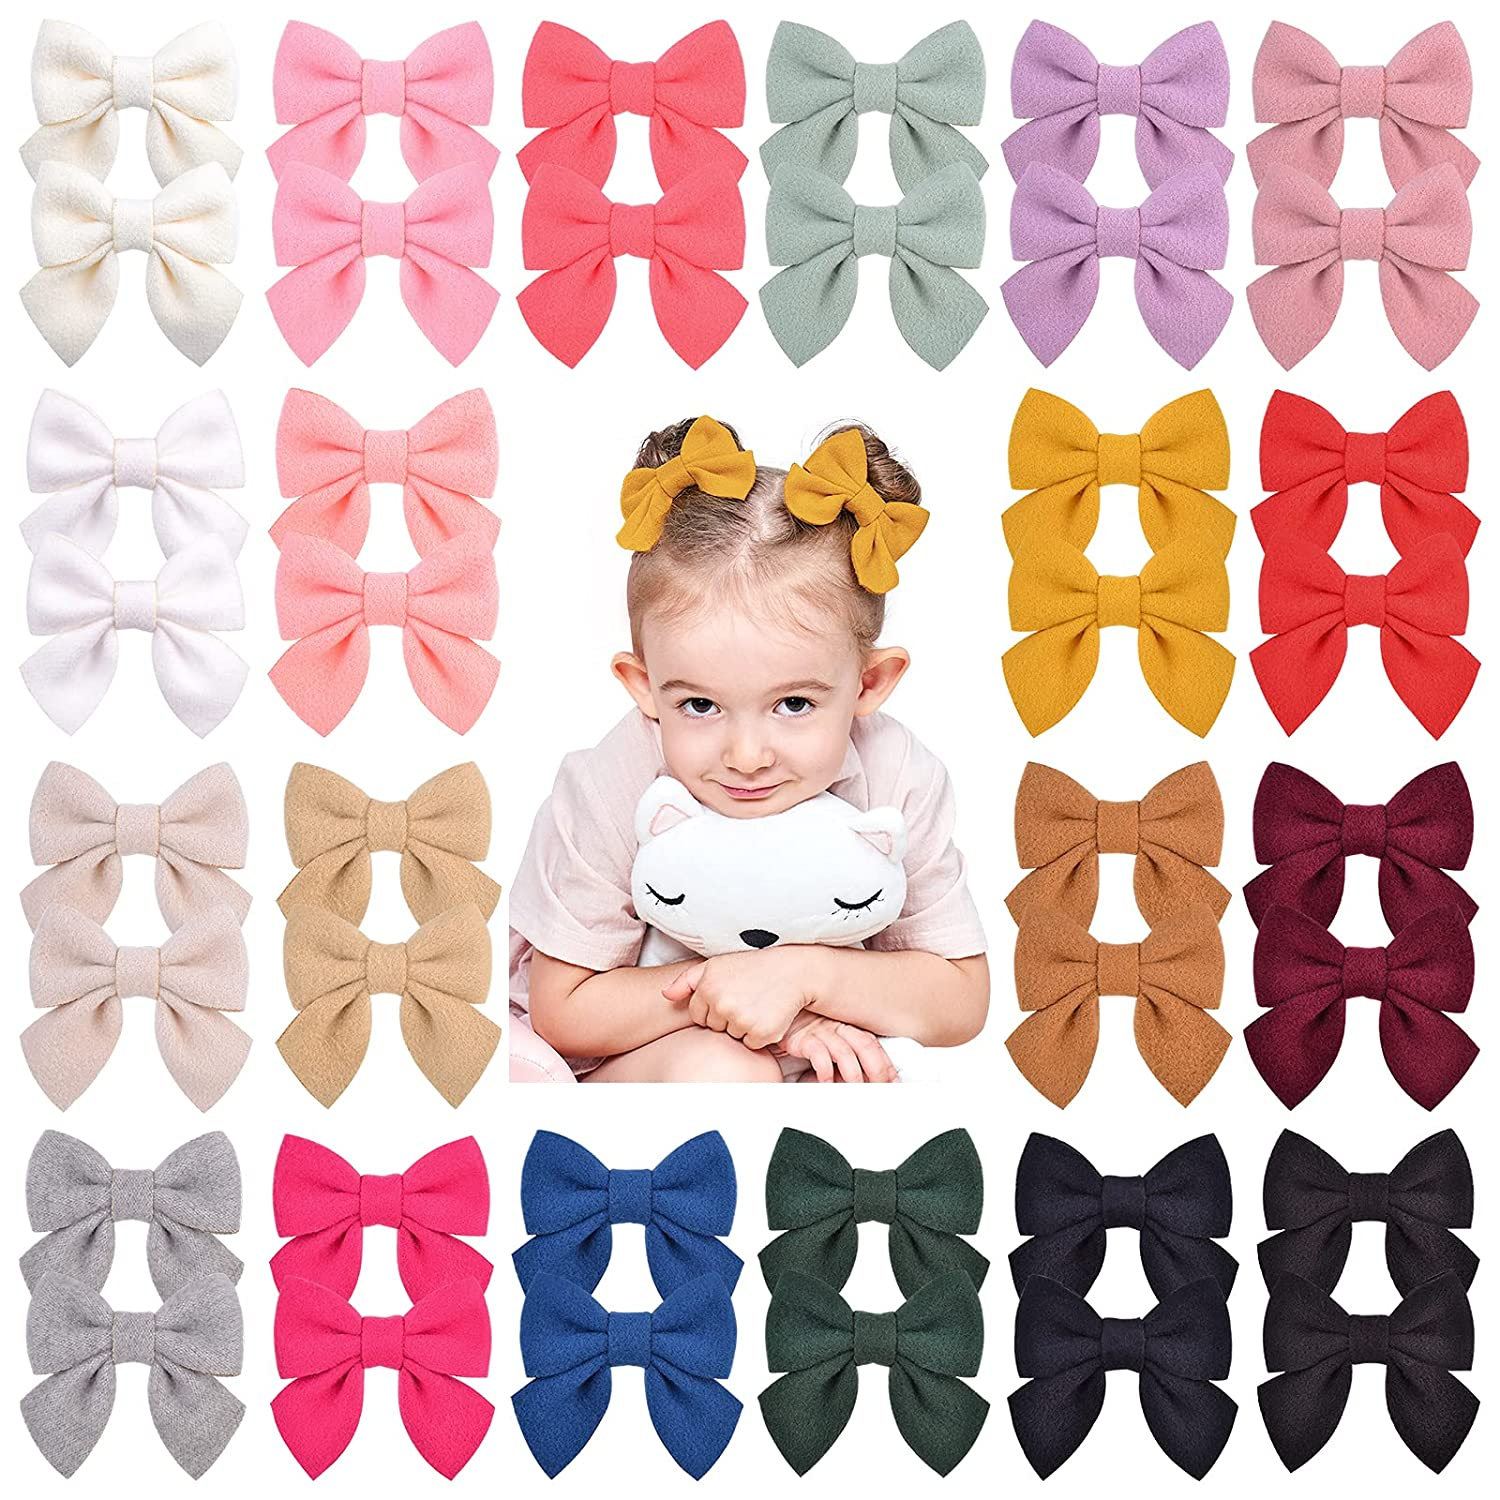 40PCS 20Colors 2.8 Inches Baby Girls Long Beach Mall Bows Alligator 100% quality warranty C Clips Hair